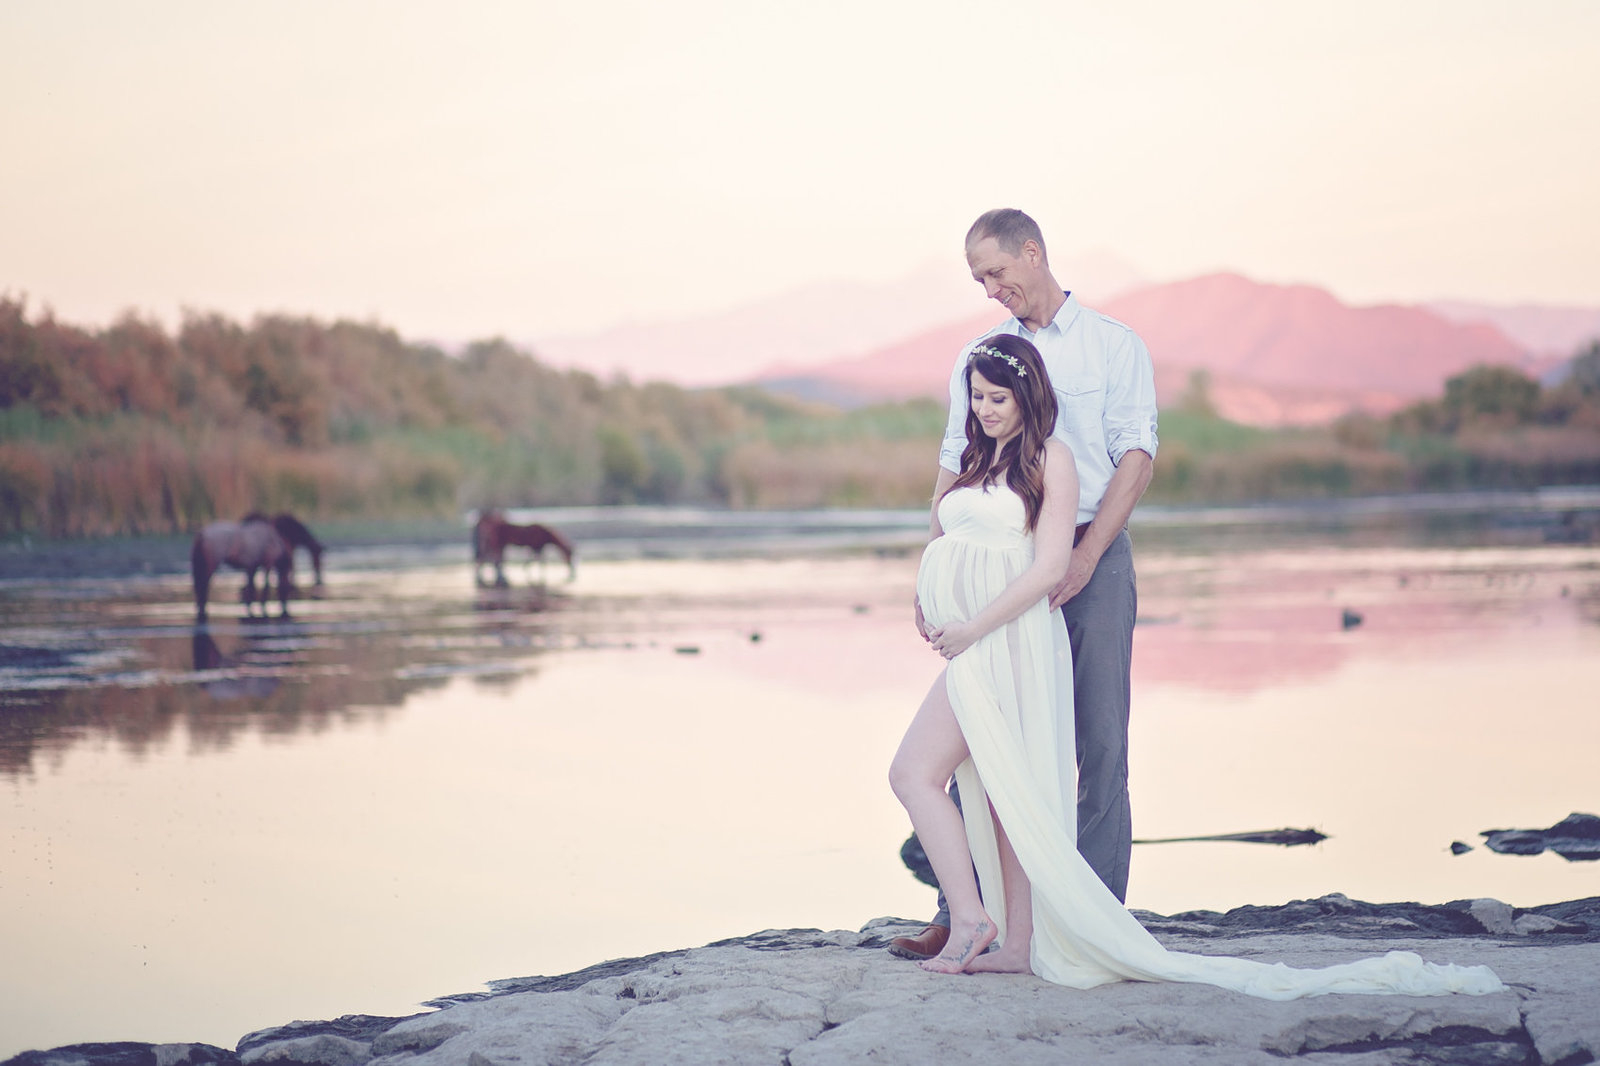 Scottsdale, Arizona Desert Maternity Photo at Rio Verde River by Plume Designs & Photography